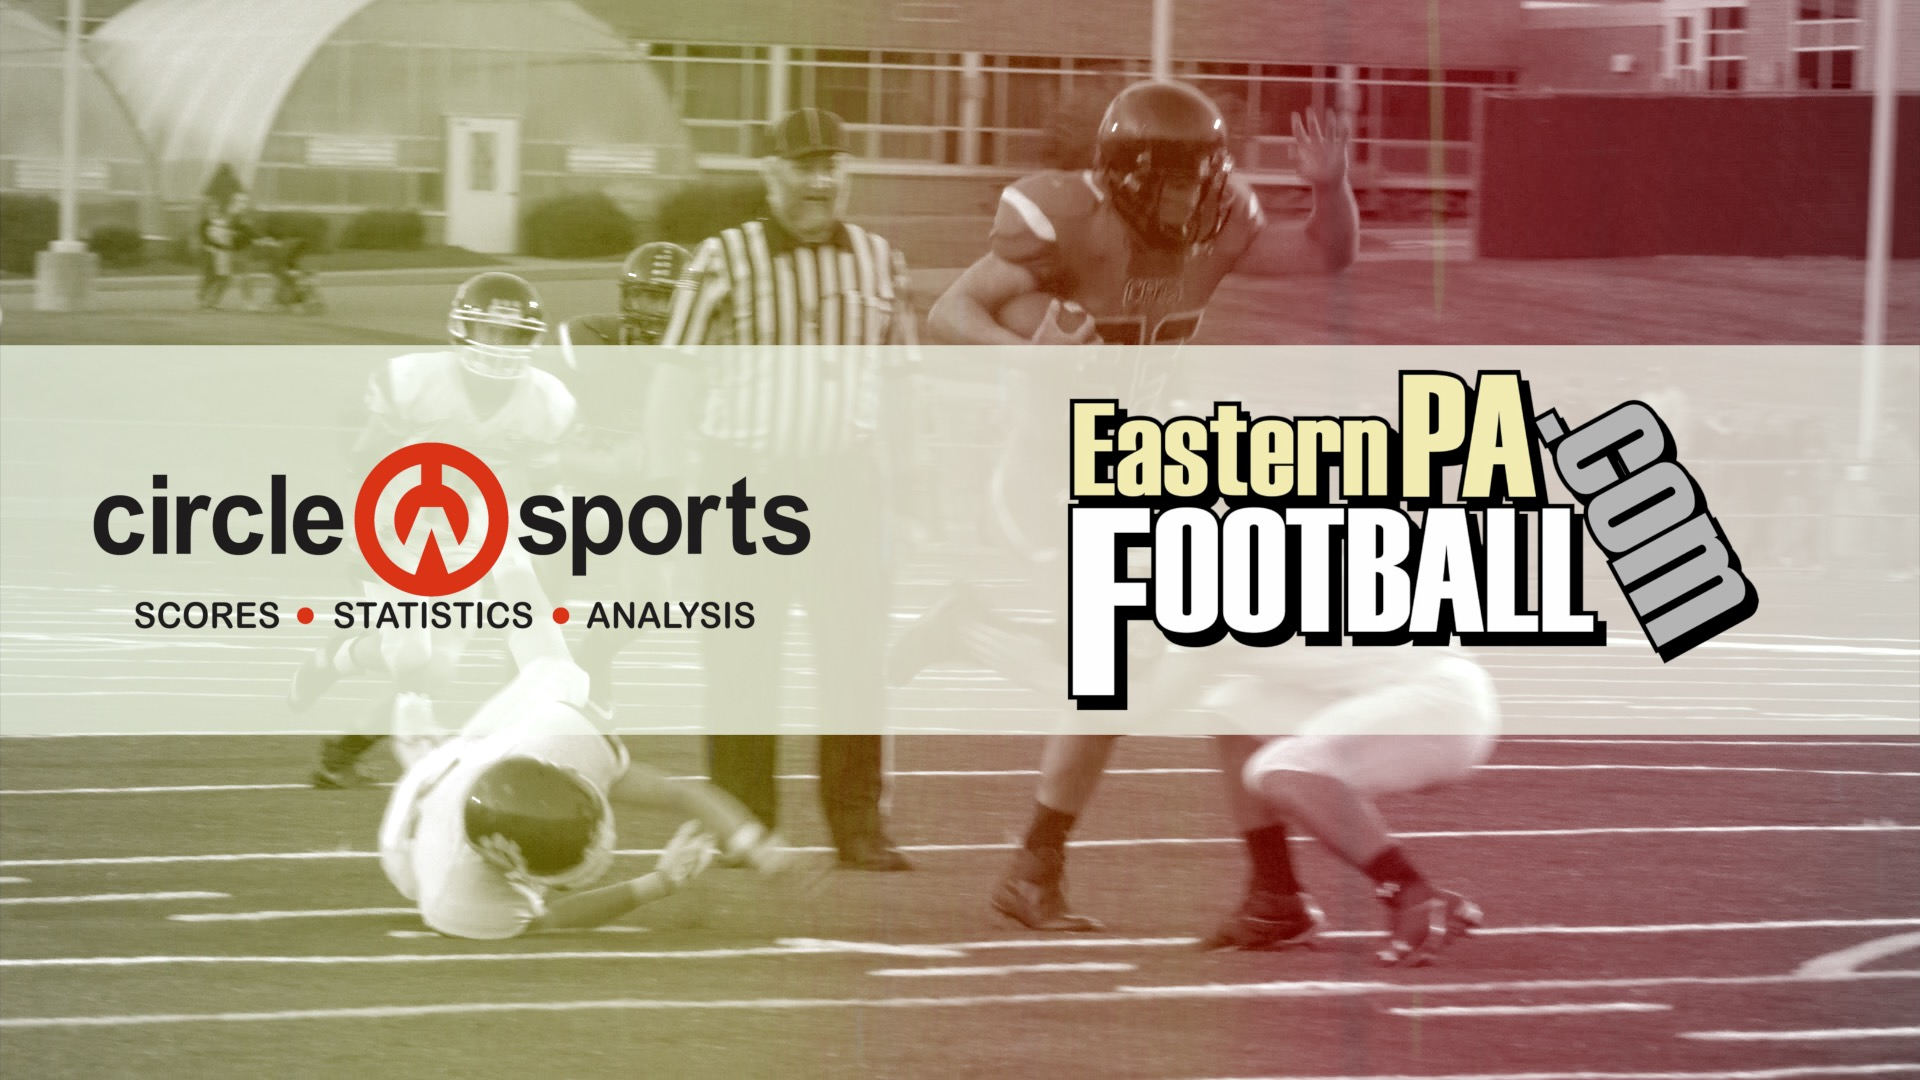 Circle W Sports partners with Eastern PA Football